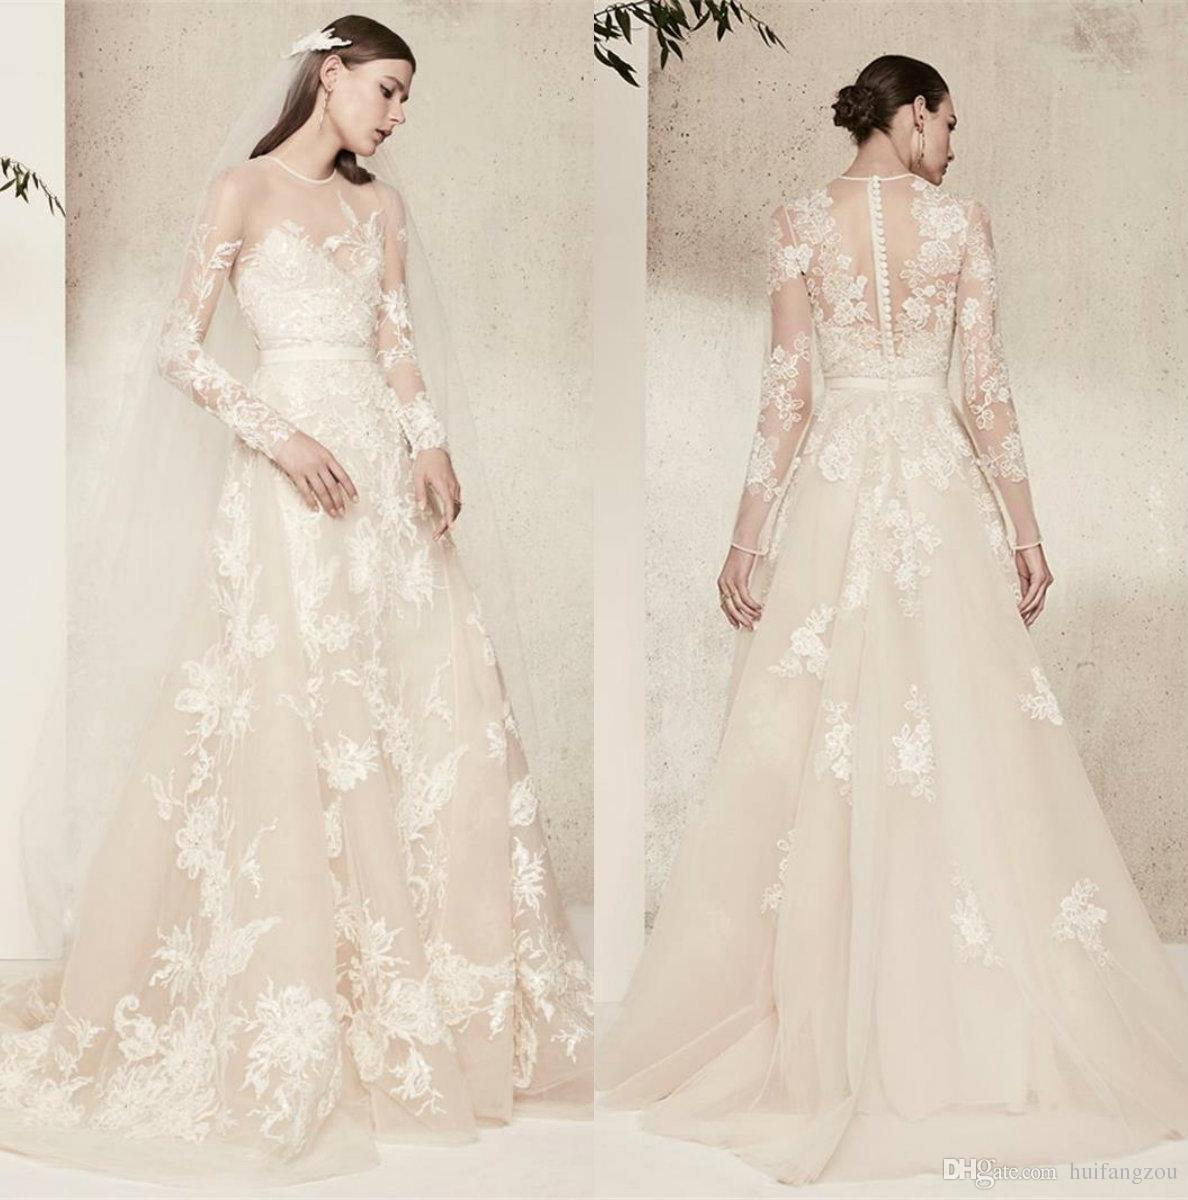 f8835098bd87 Discount Elie Saab Illusion A Line Wedding Dresses Sheer Neck Delicate Lace  Applique Long Sleeves Bridal Gowns Custom Made Country Wedding Dress Dress  ...